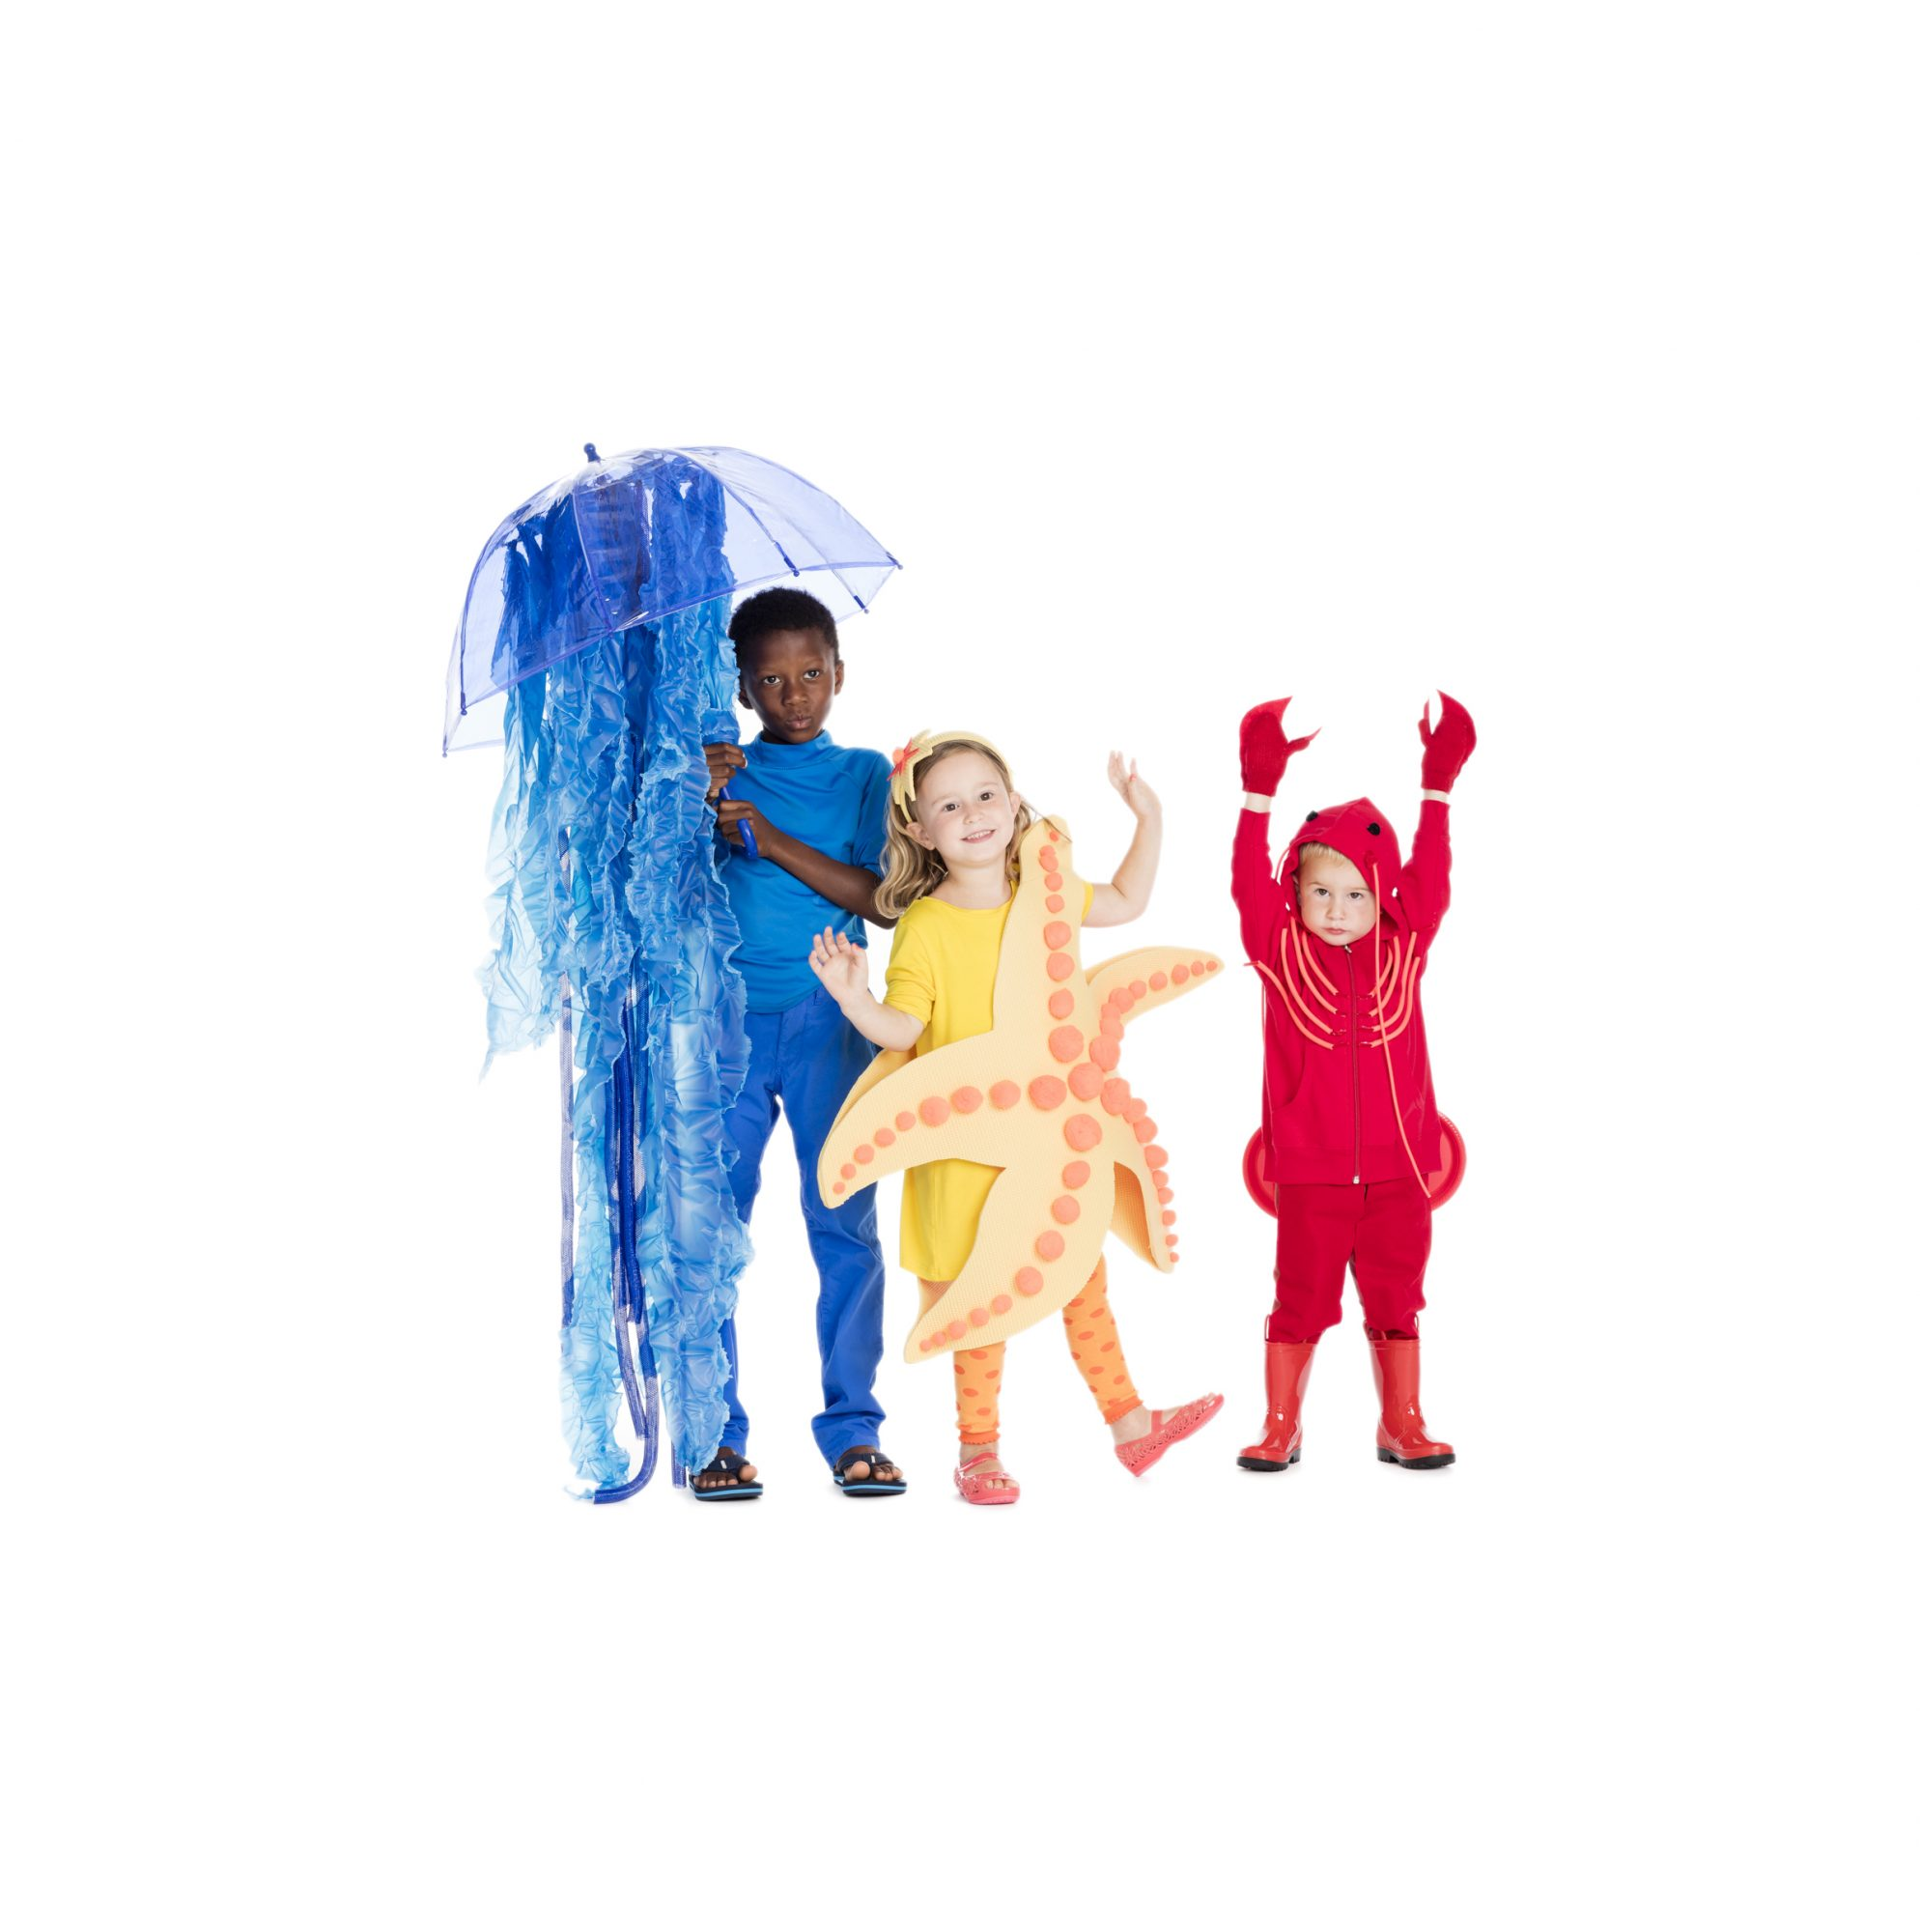 Group Halloween costumes - under the sea